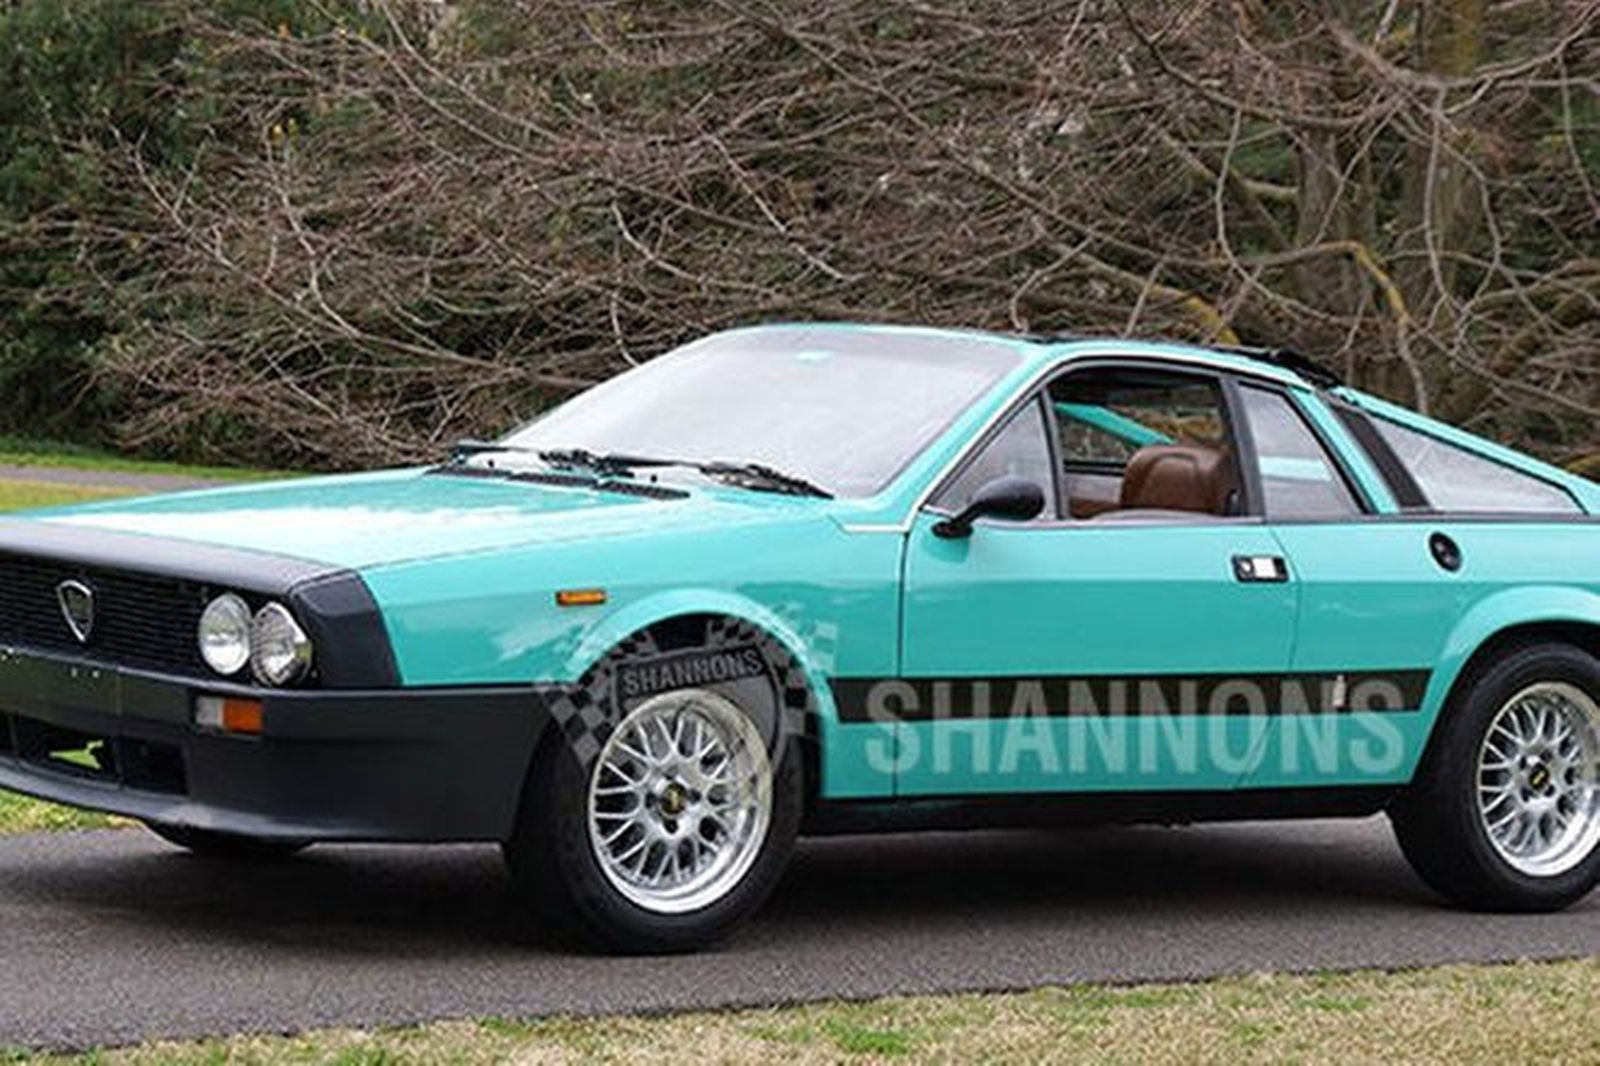 Sold: Lancia Montecarlo MkI Coupe (RHD) Auctions - Lot 16 - Shannons